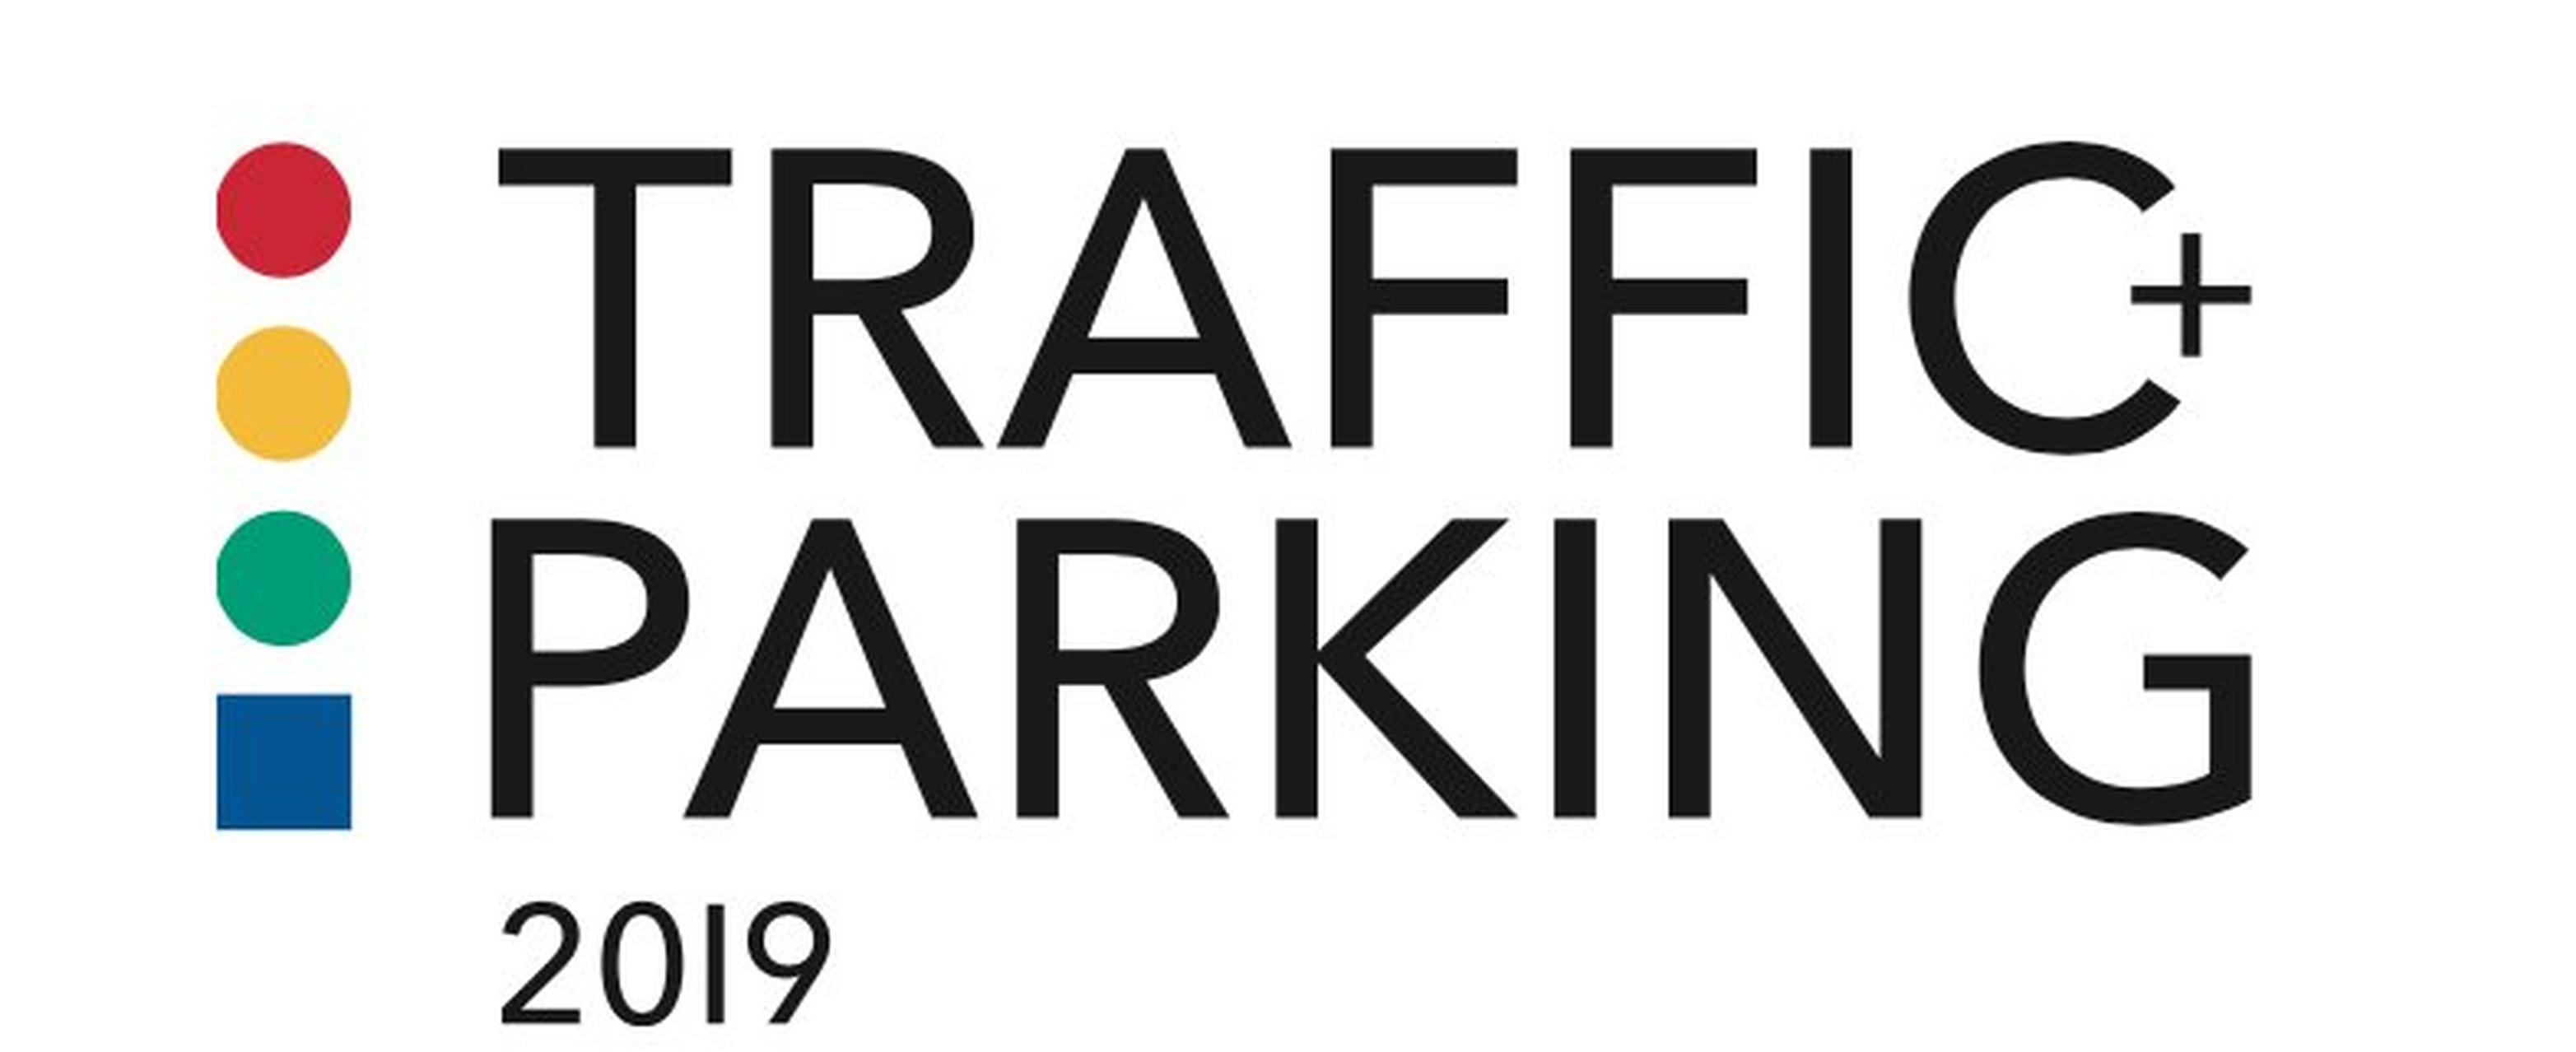 PATROL will be sharing insights at Traffic + Parking 2019